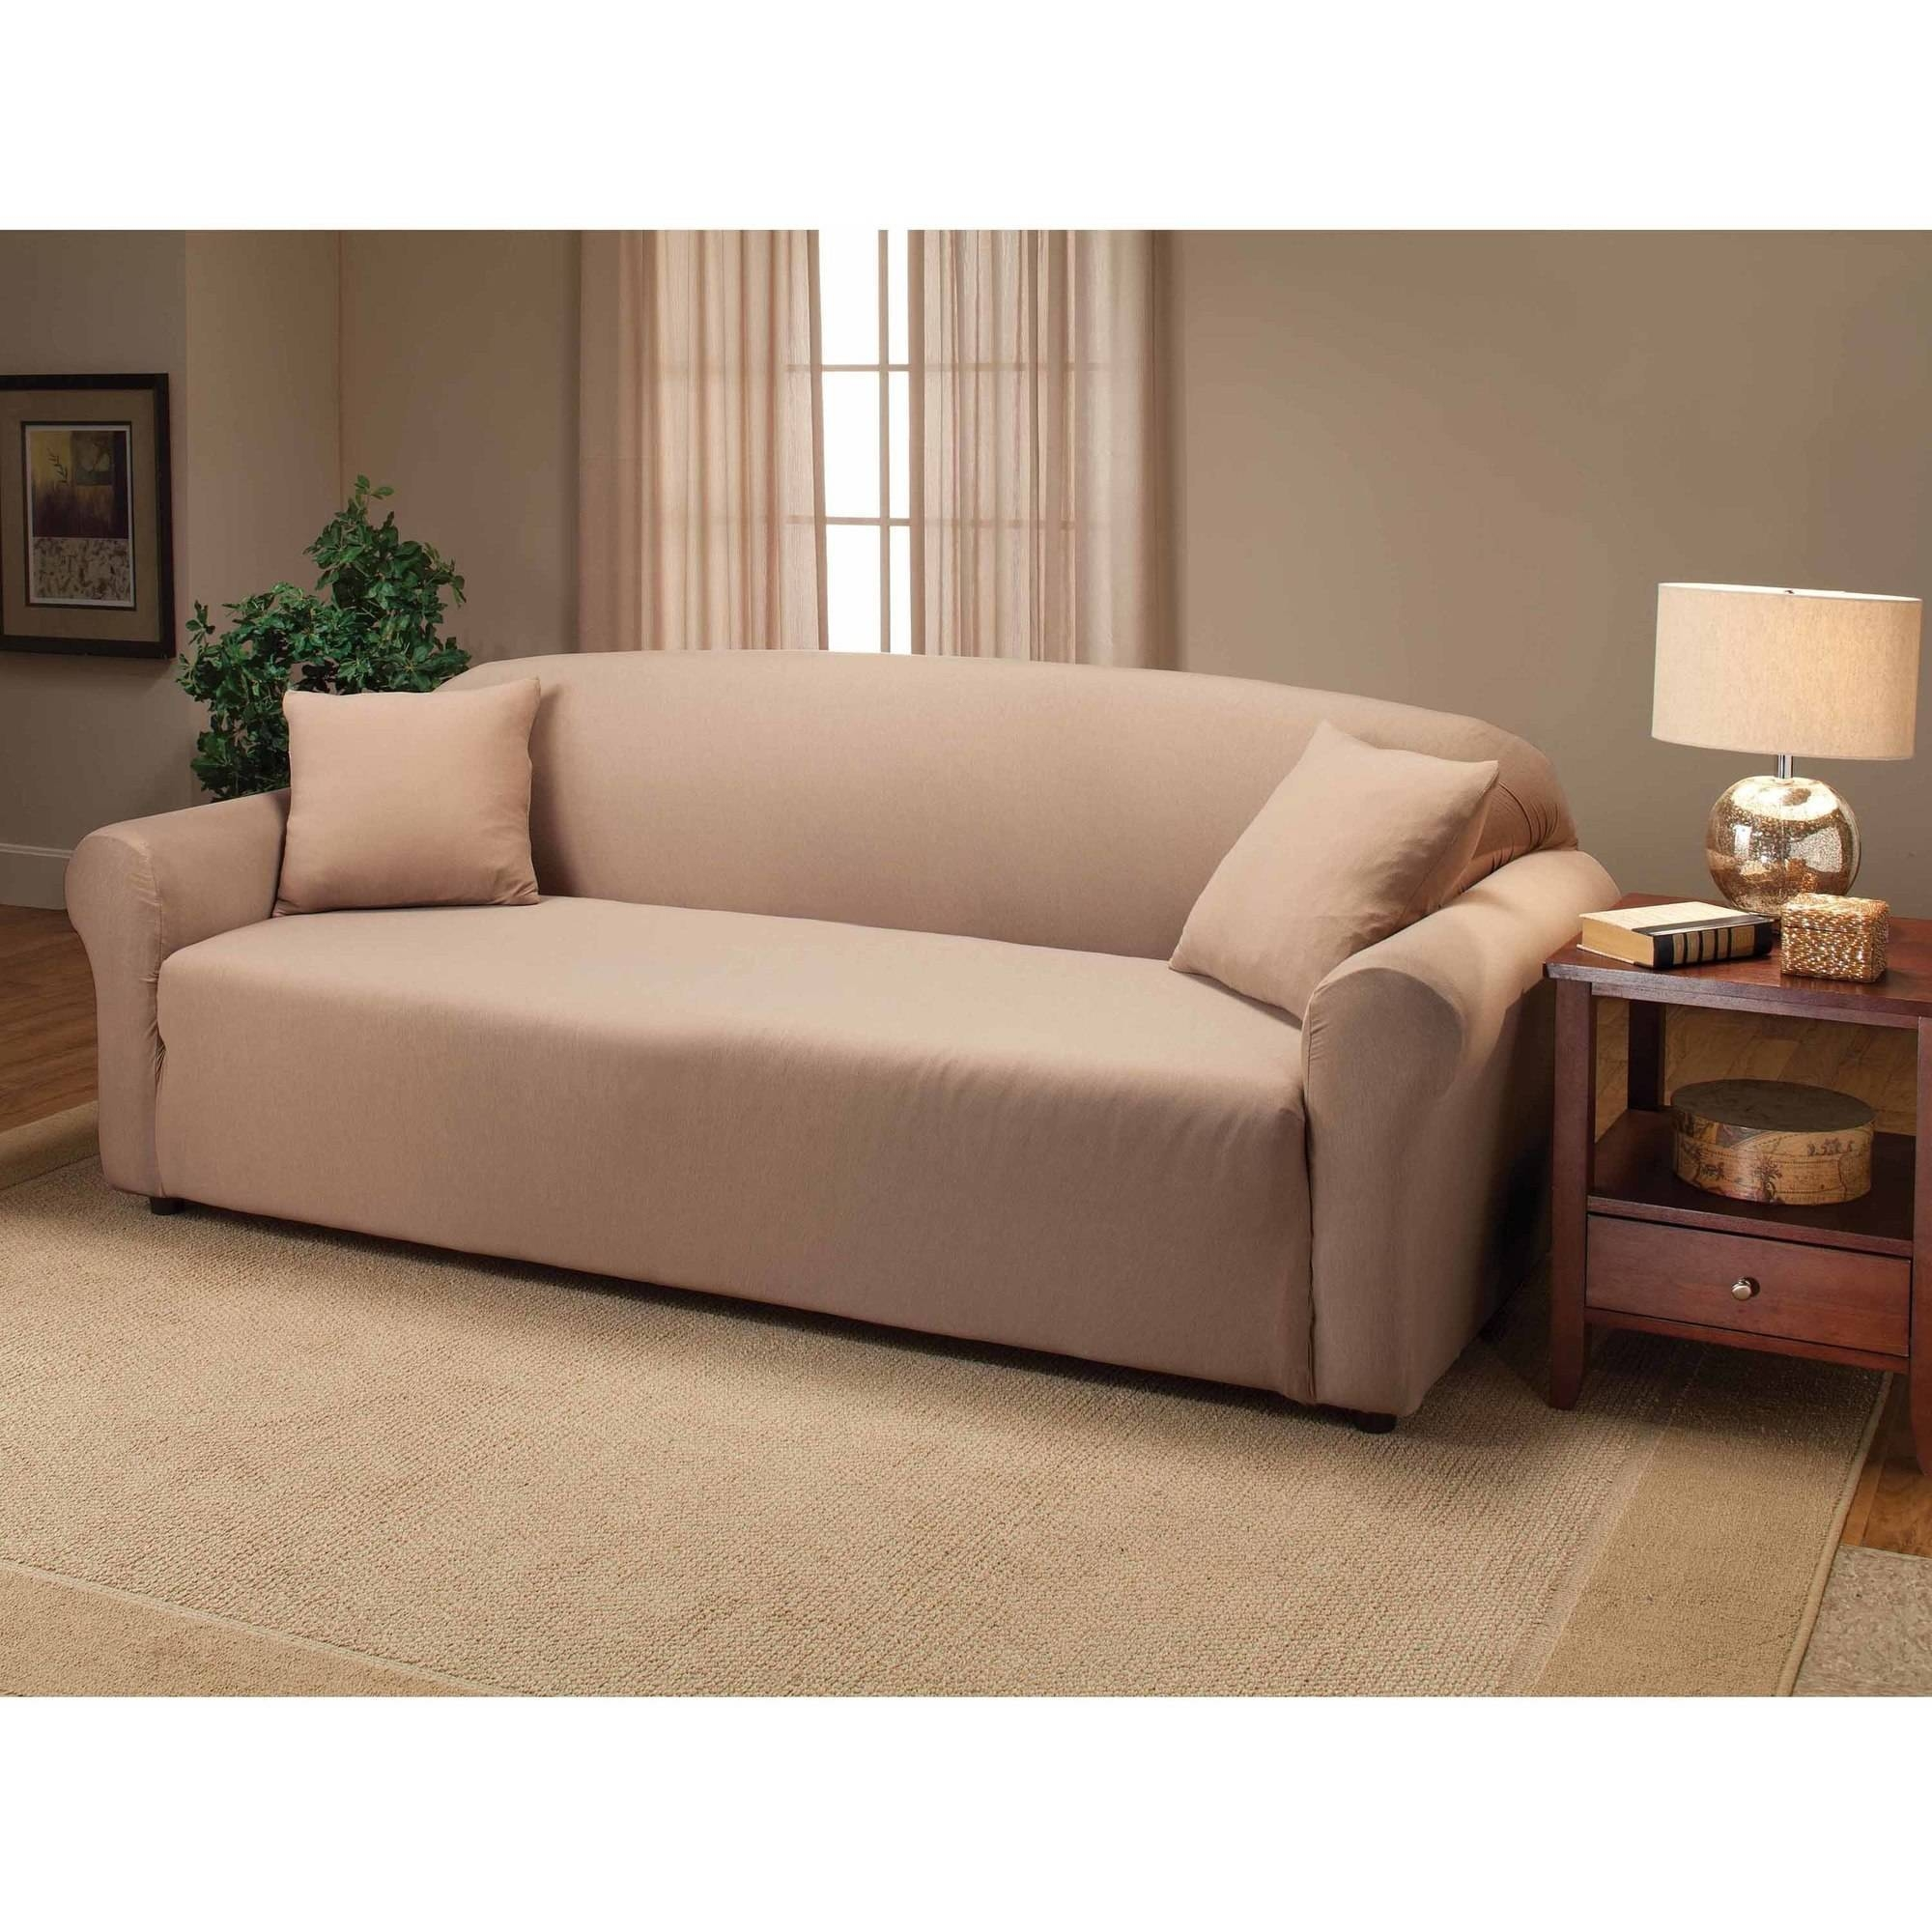 Jersey Stretch Sofa Slipcover - Walmart with Stretch Slipcovers for Sofas (Image 5 of 15)